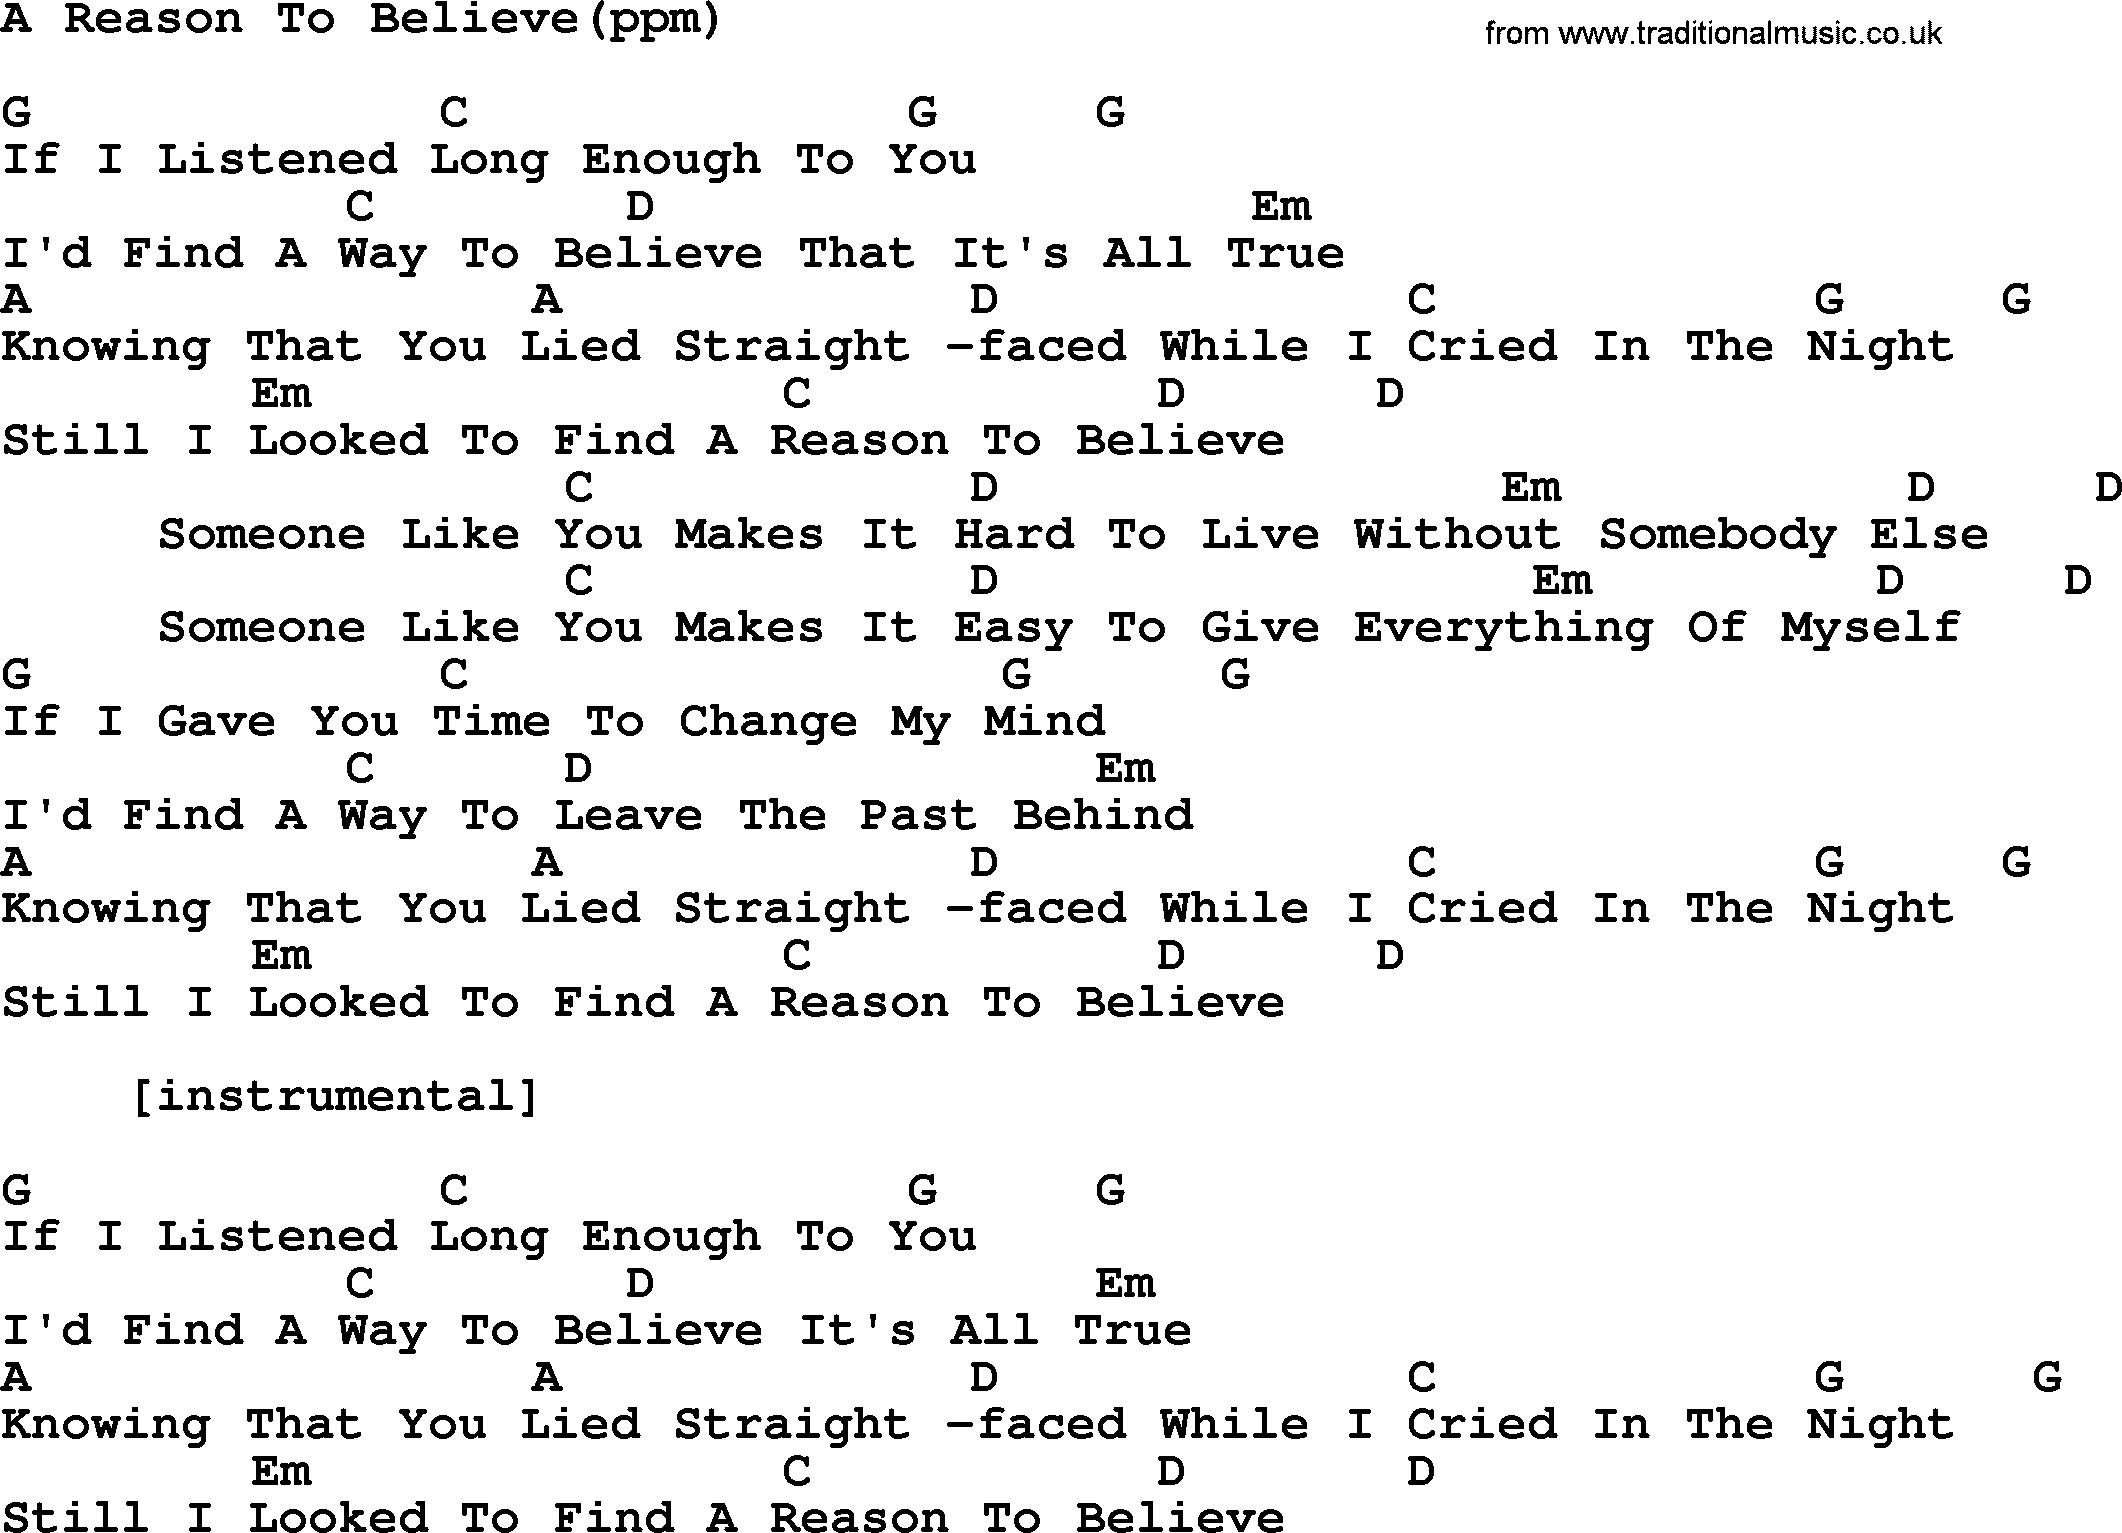 peter paul and mary song a reason to believe lyrics and chords peter paul and mary song a reason to believe lyrics and chords